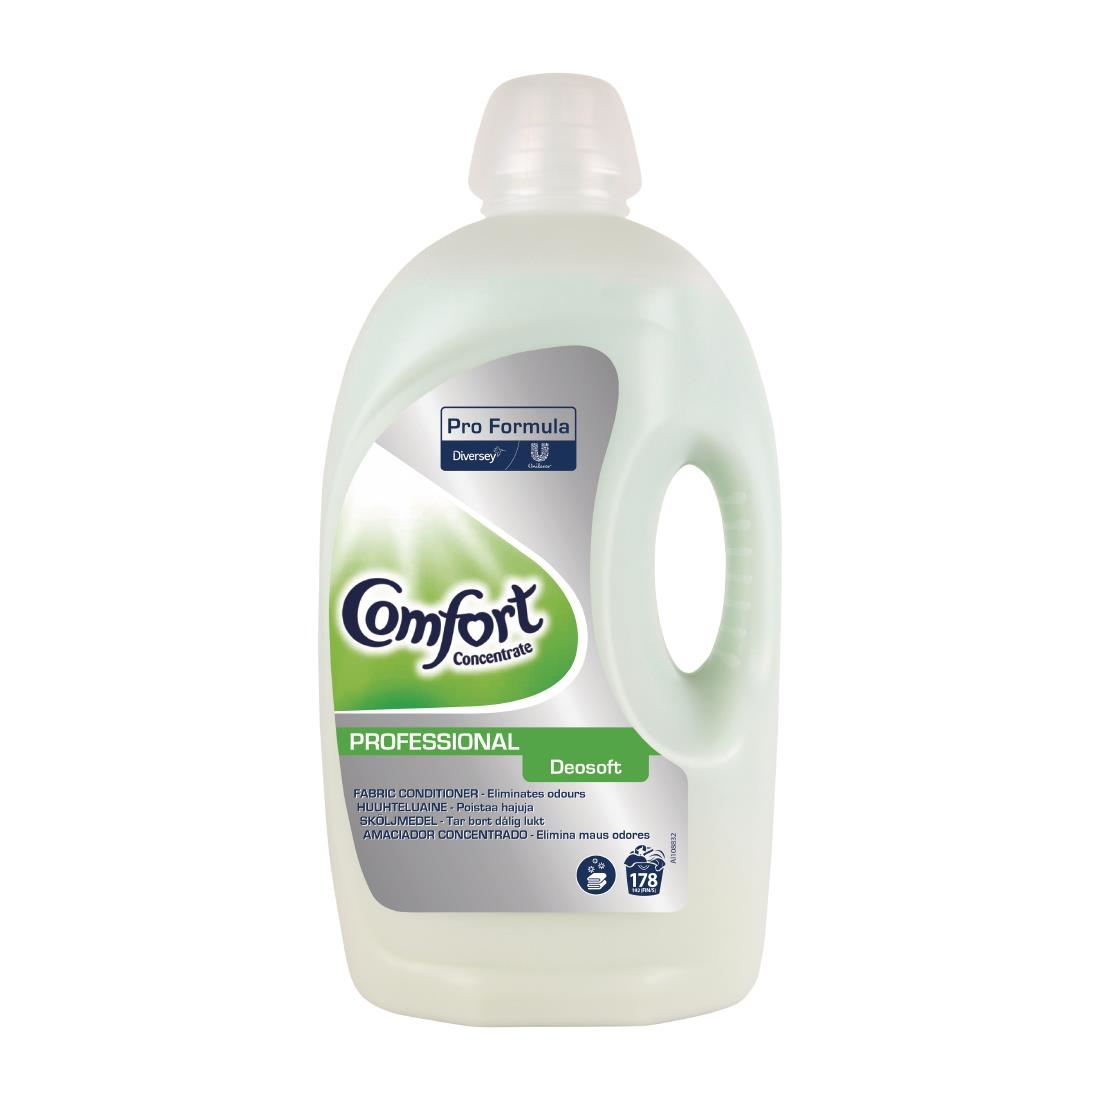 Image of Comfort Pro Formula Deosoft Fabric Conditioner Concentrate 5Ltr (2 Pack) Pack of 2